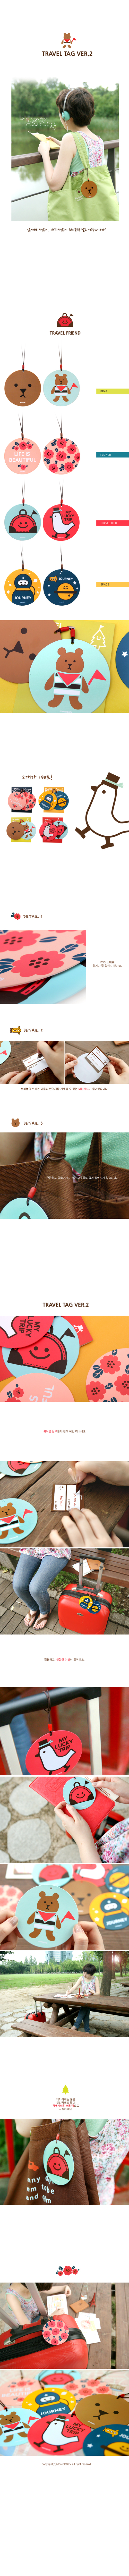 travel-tag-ver-2.jpg